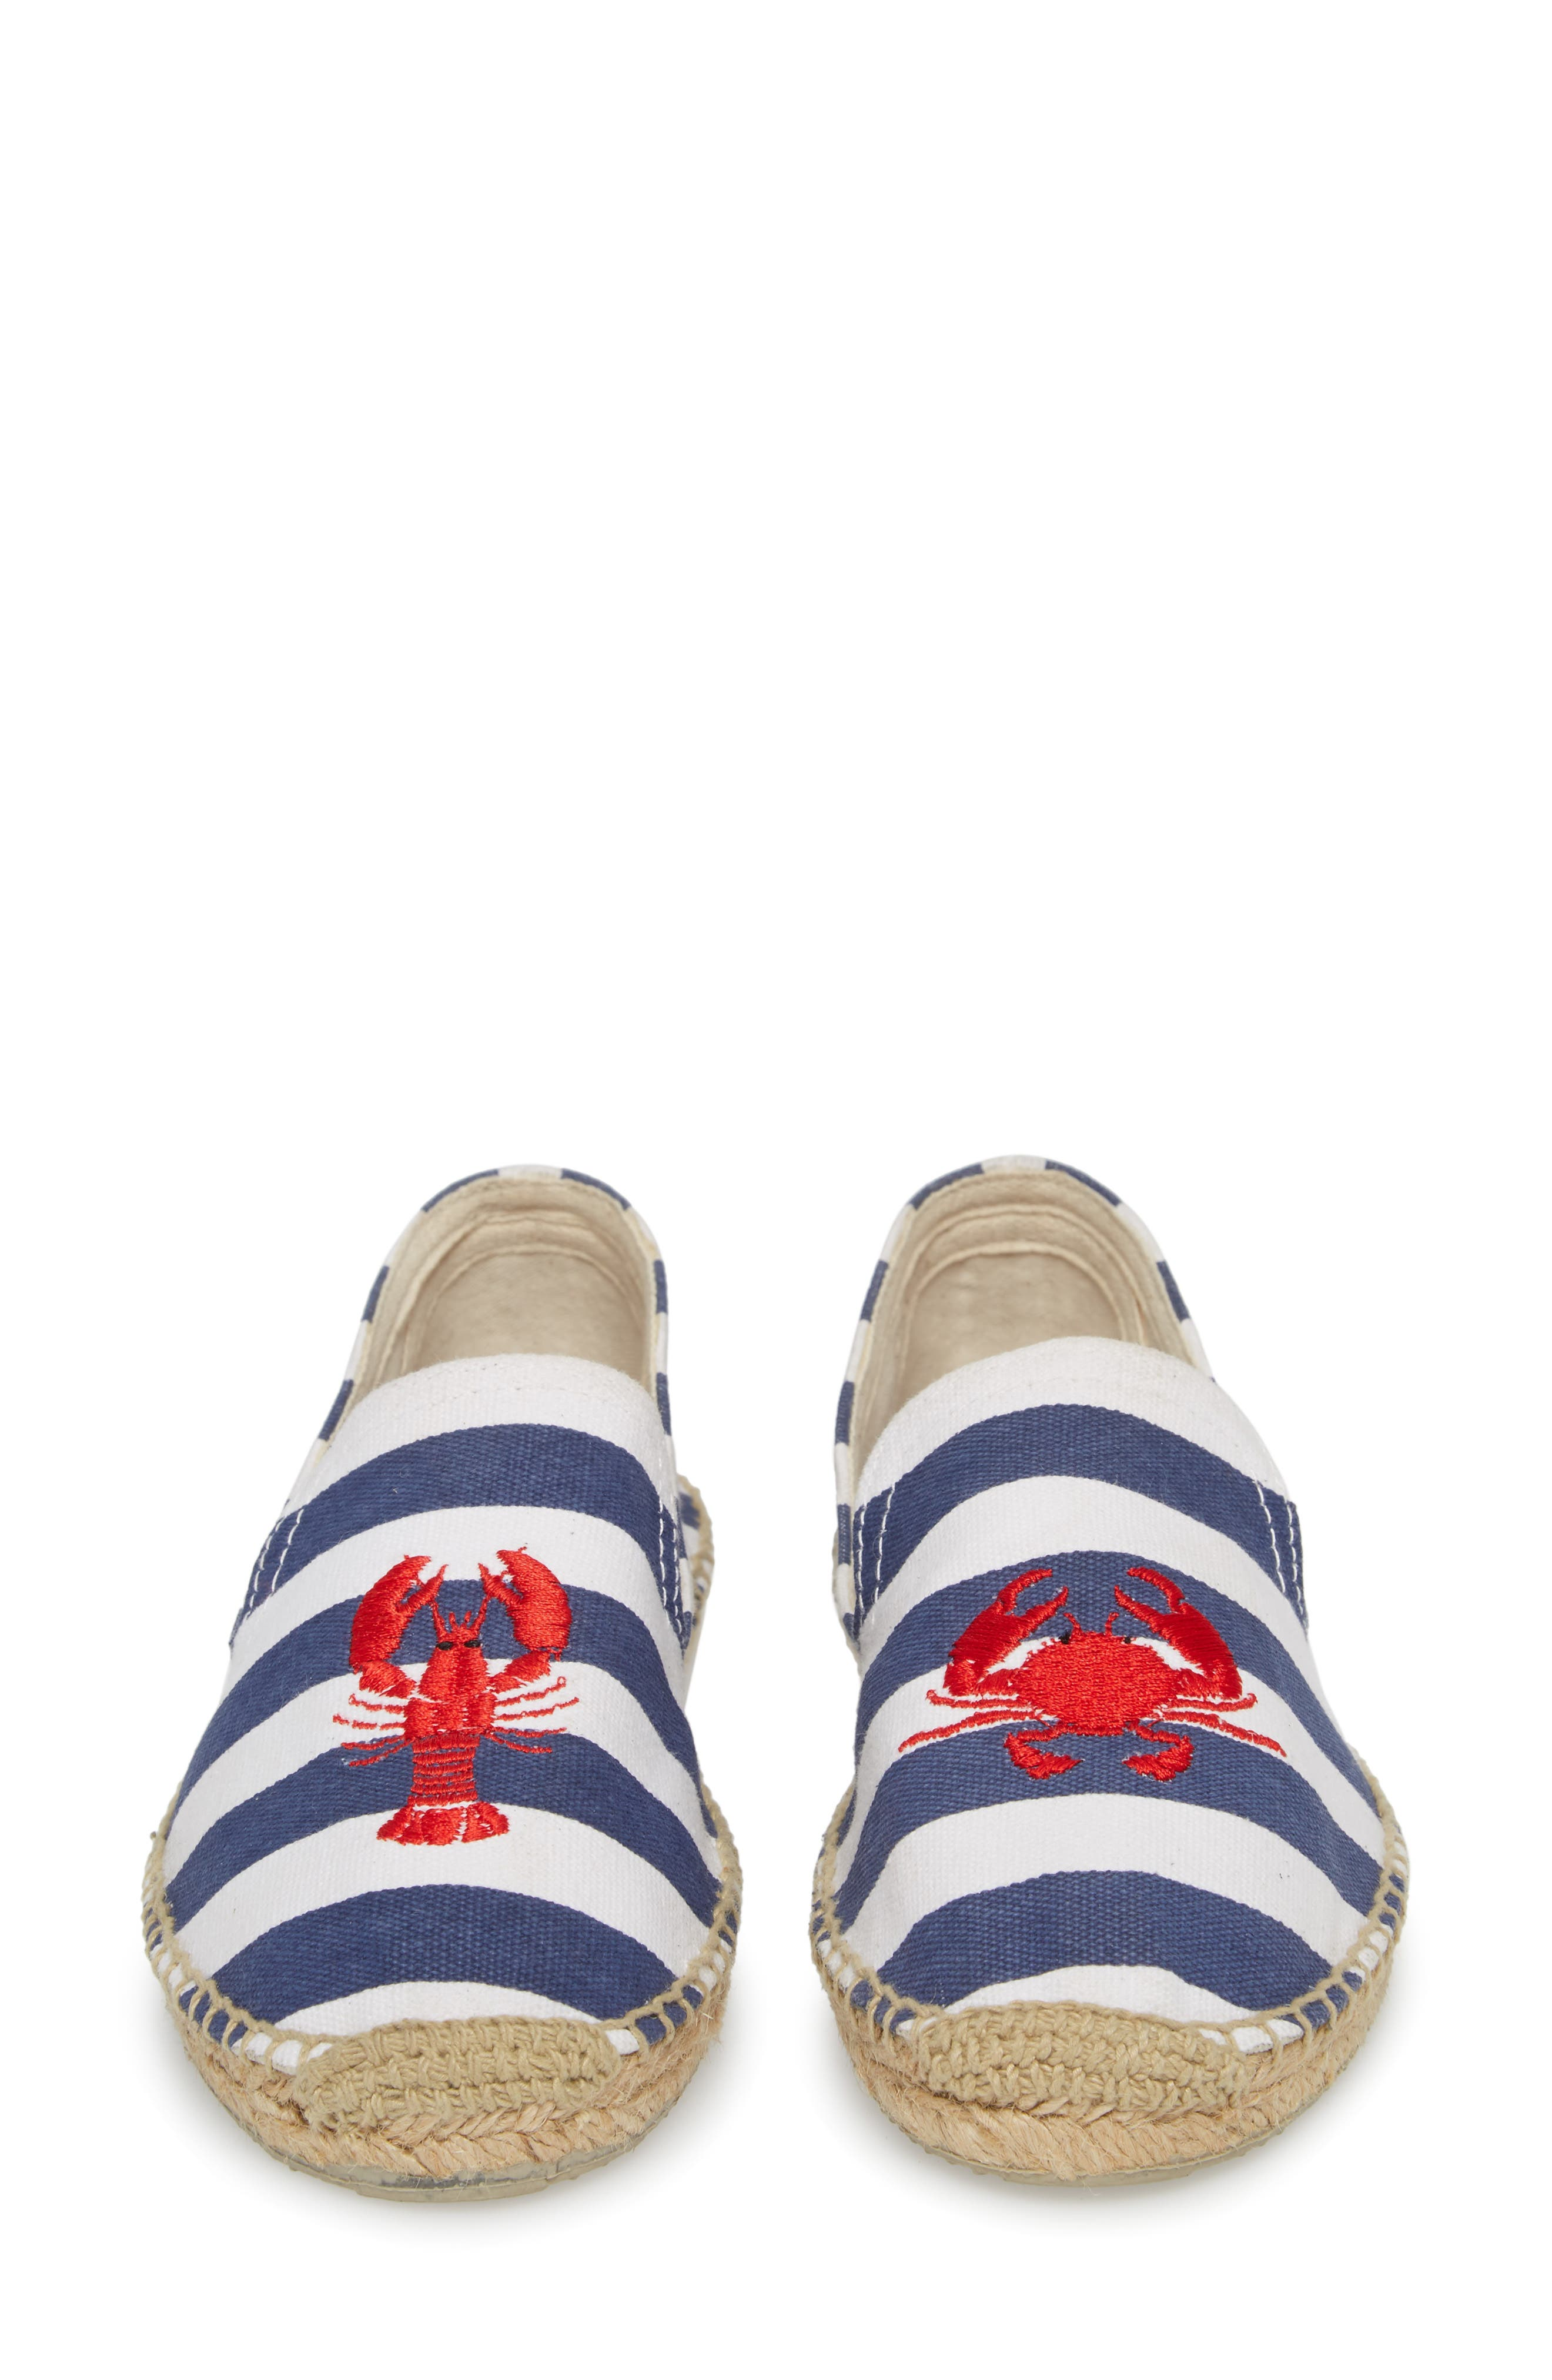 Embroidered Lobster & Crab Espadrille Flat,                             Alternate thumbnail 5, color,                             415